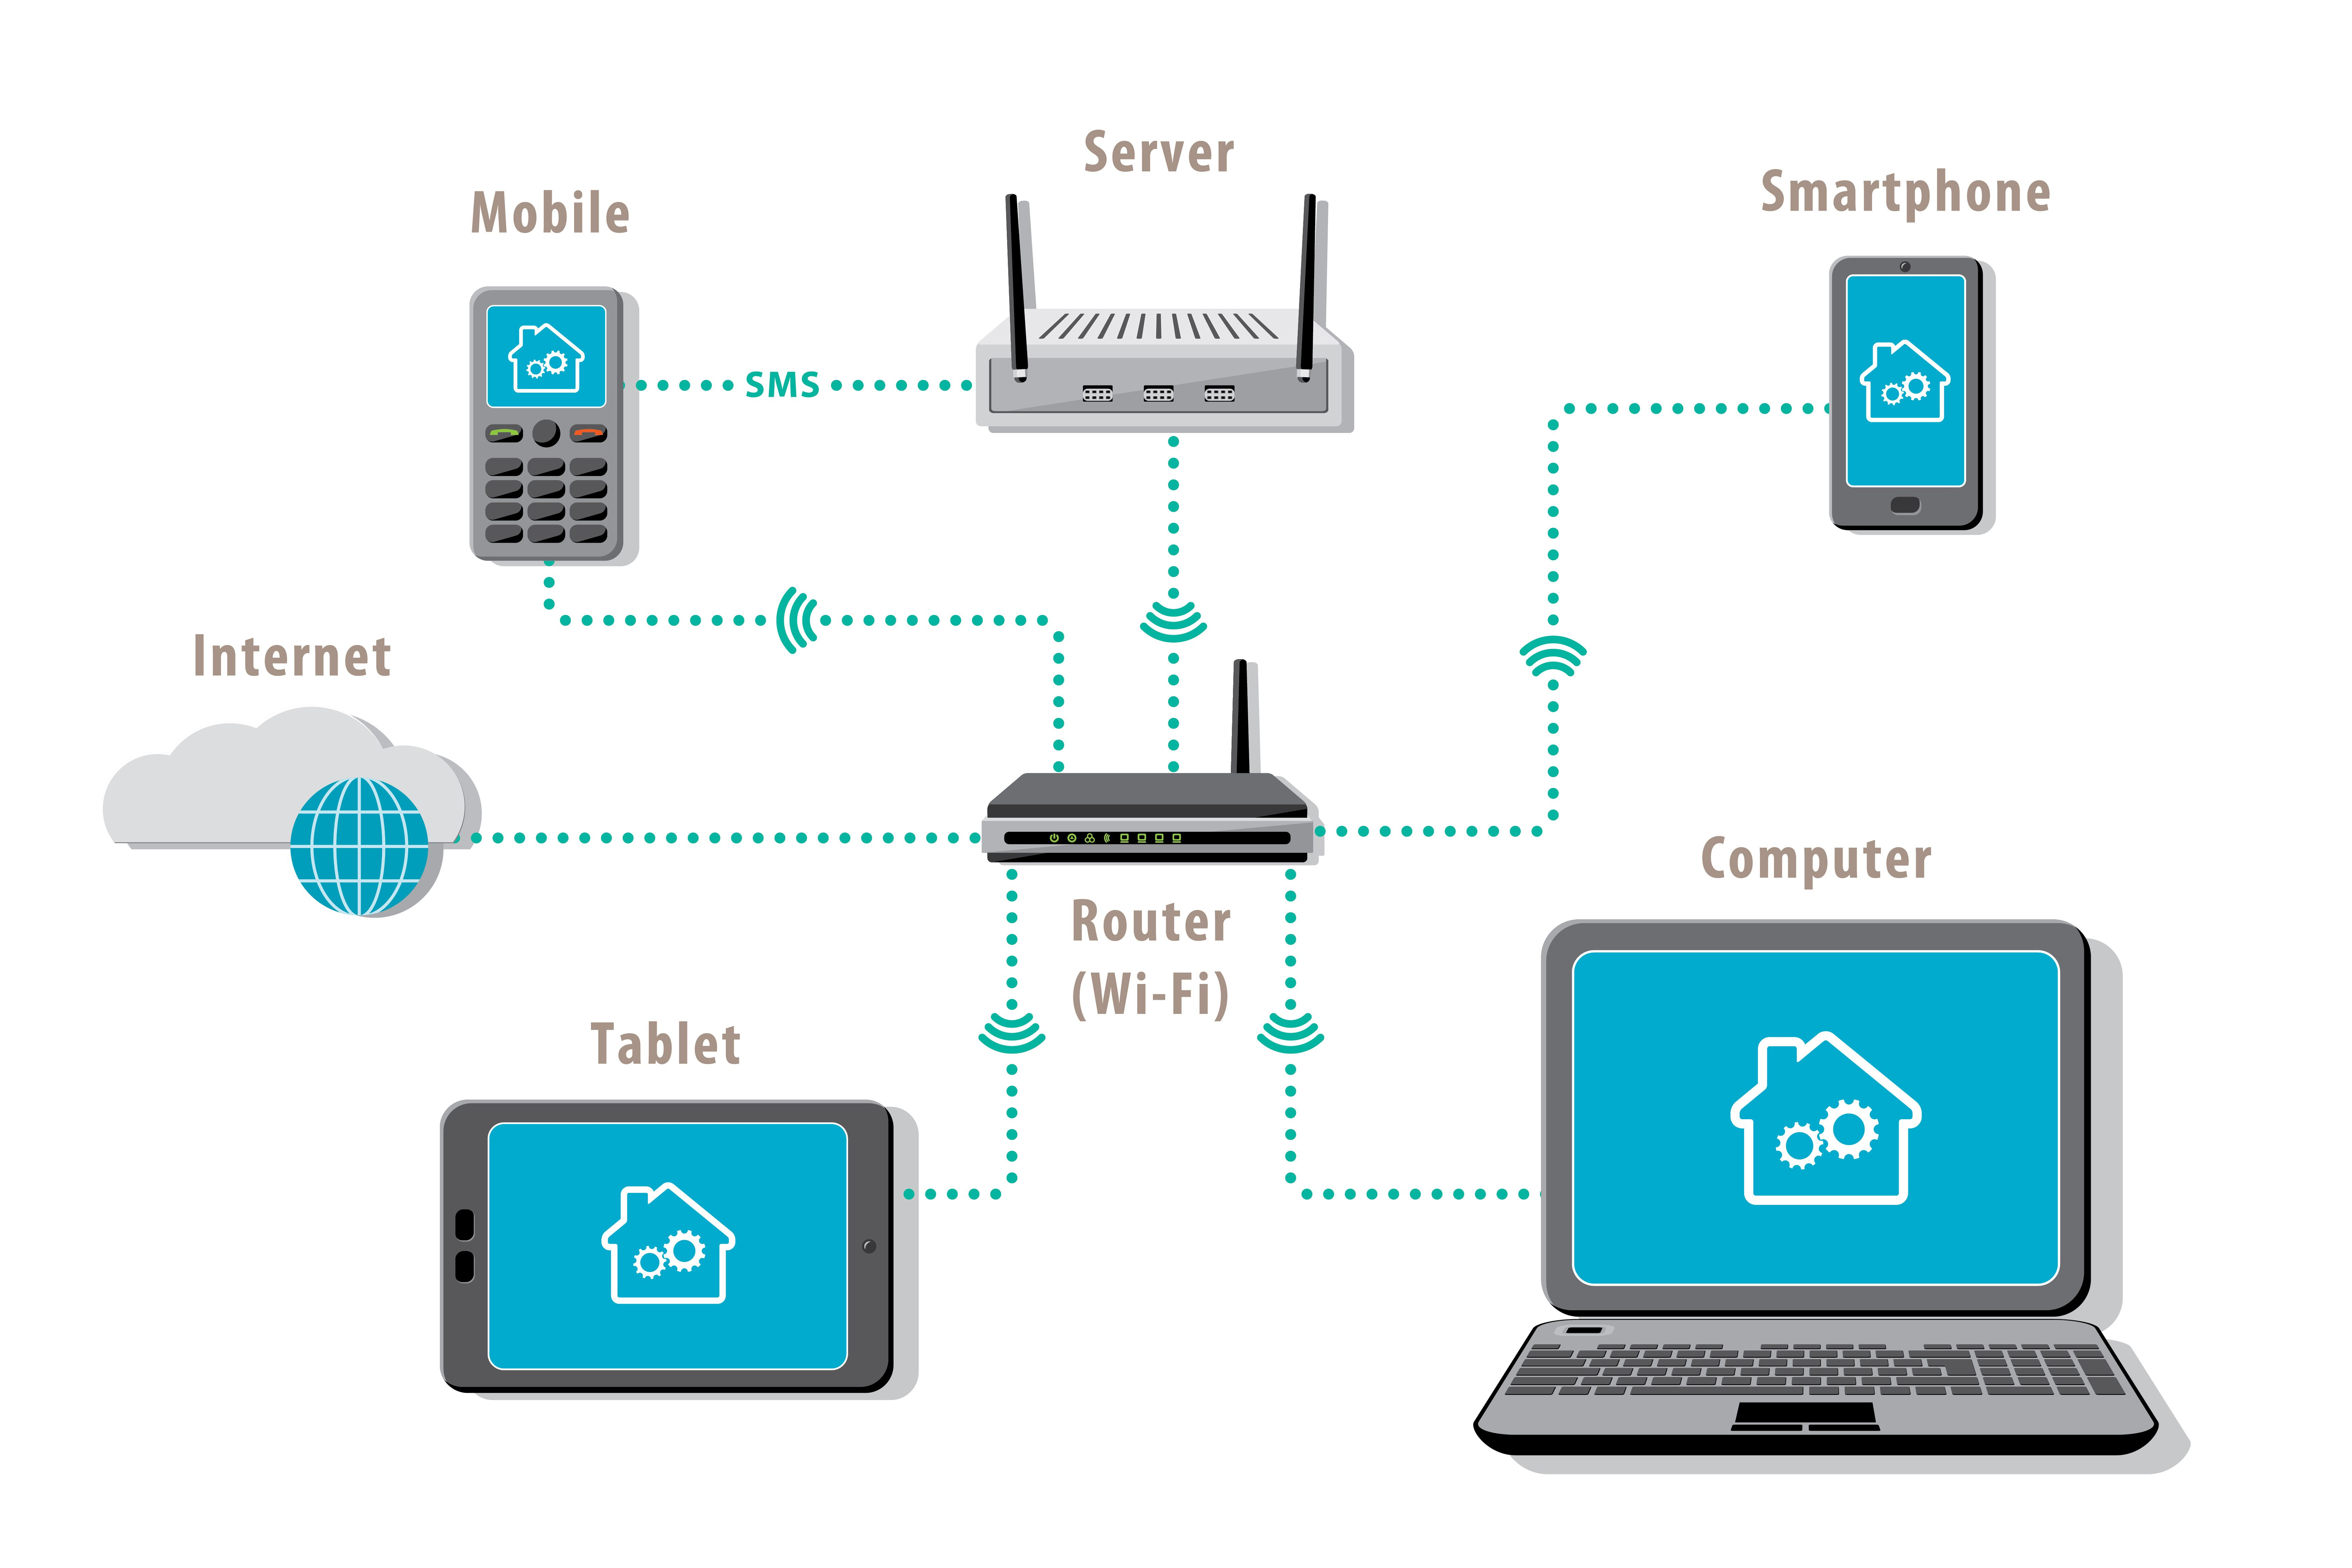 What Is the Difference Between LAN and WAN in Networking?